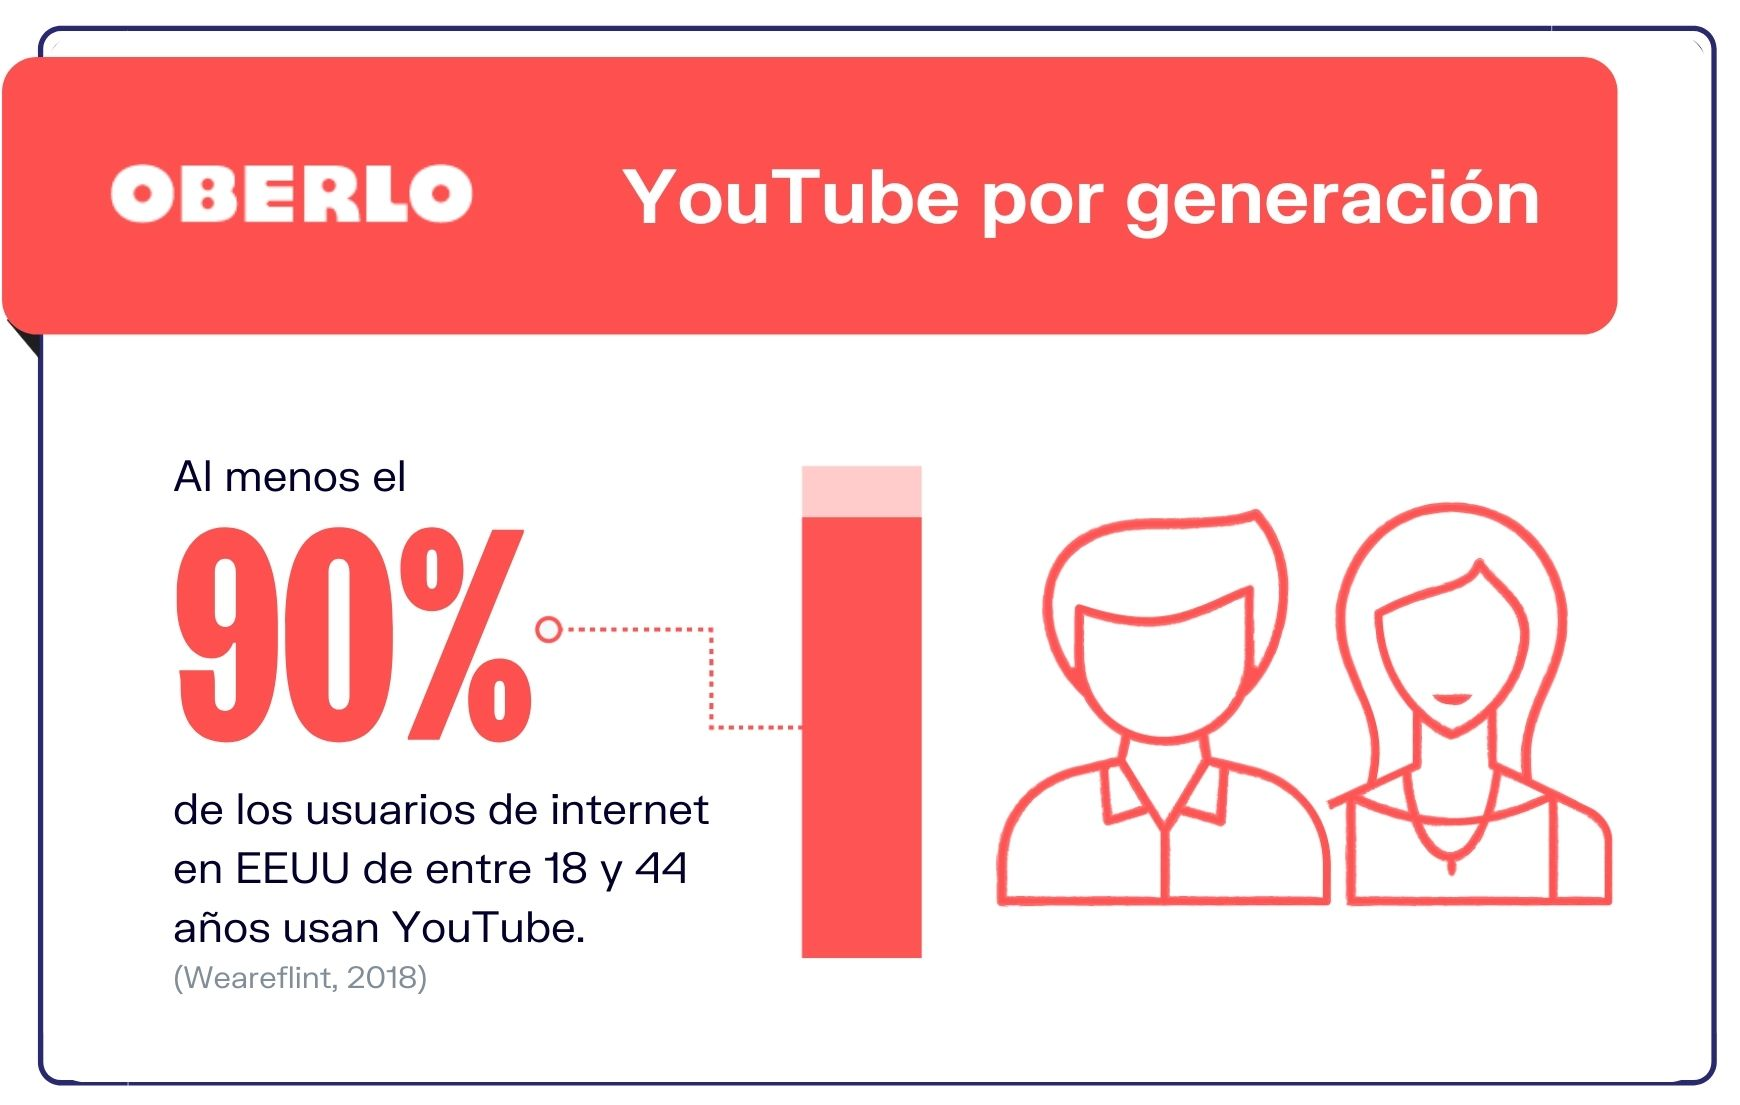 Marketing-en-YouTube-Uso-de-YouTube-por-generacion